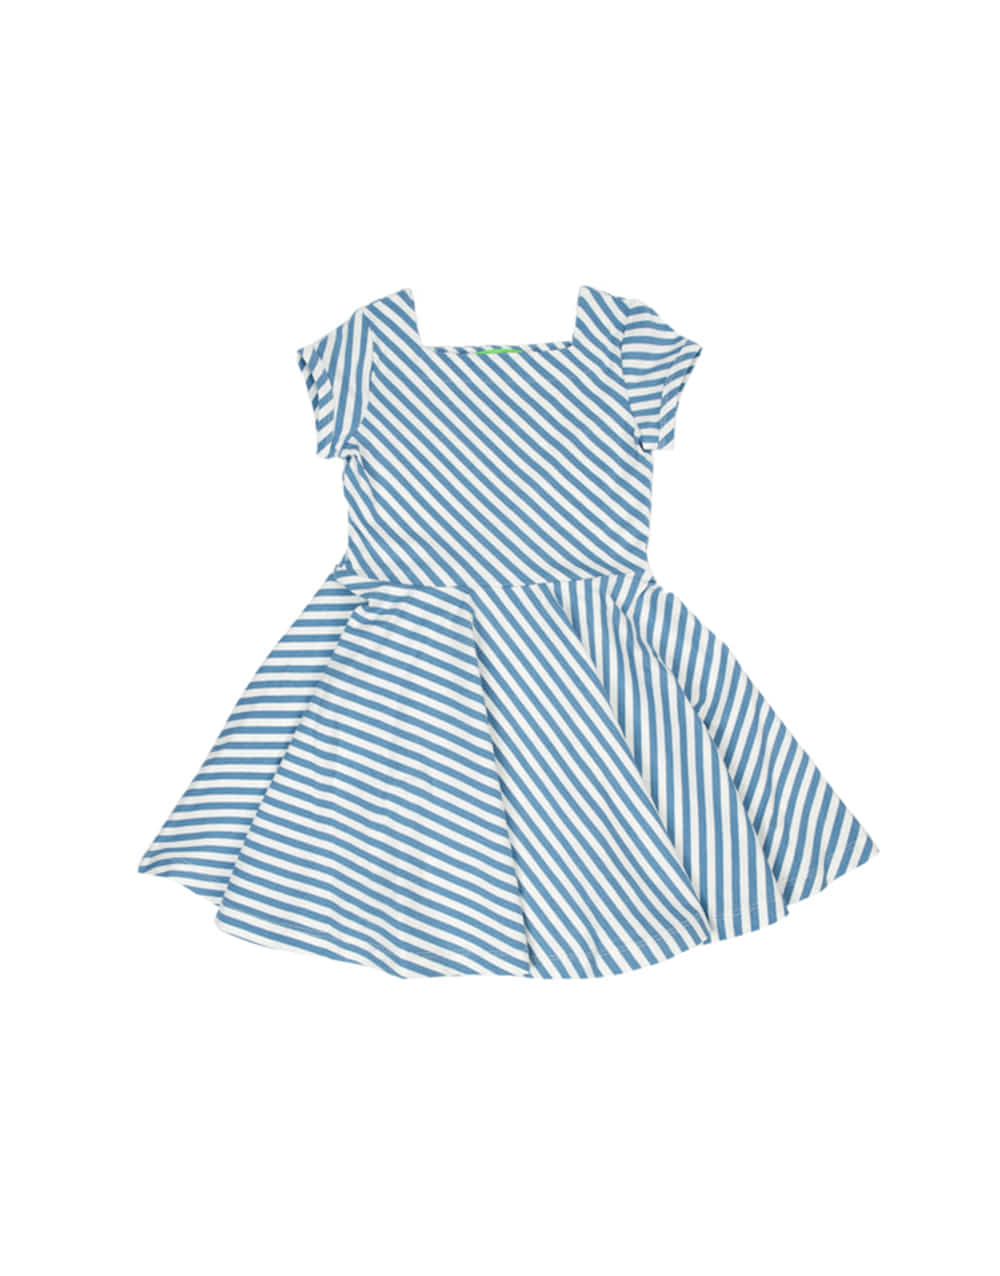 LILY BALOU  Kiki  Dress    Diagonal Stripes